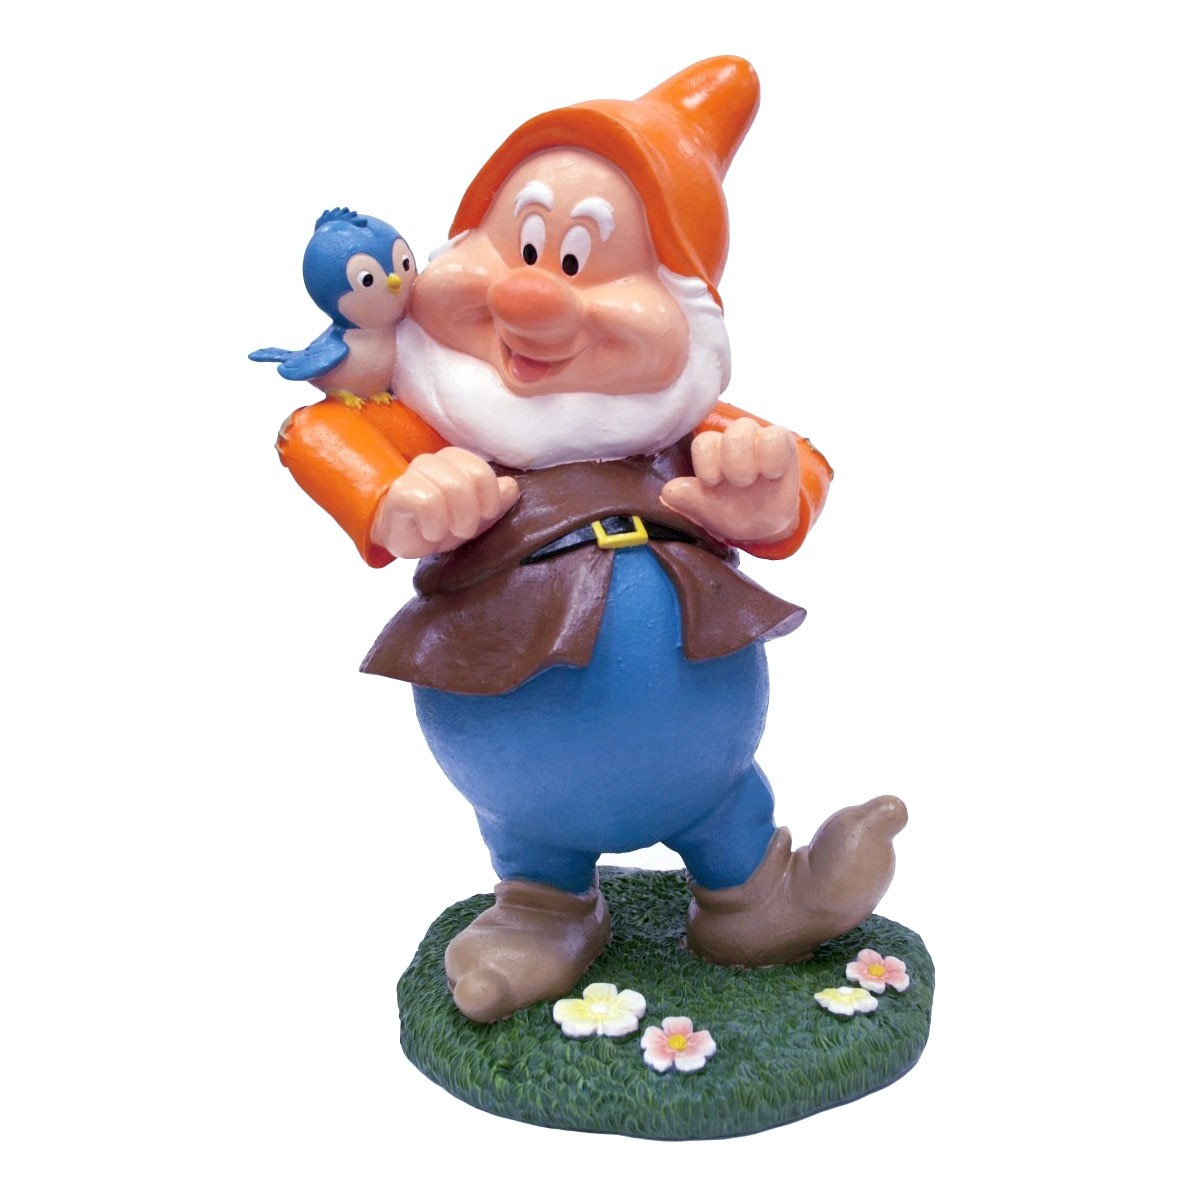 "12"" Tall Disney's Happy Dwarf Statue"